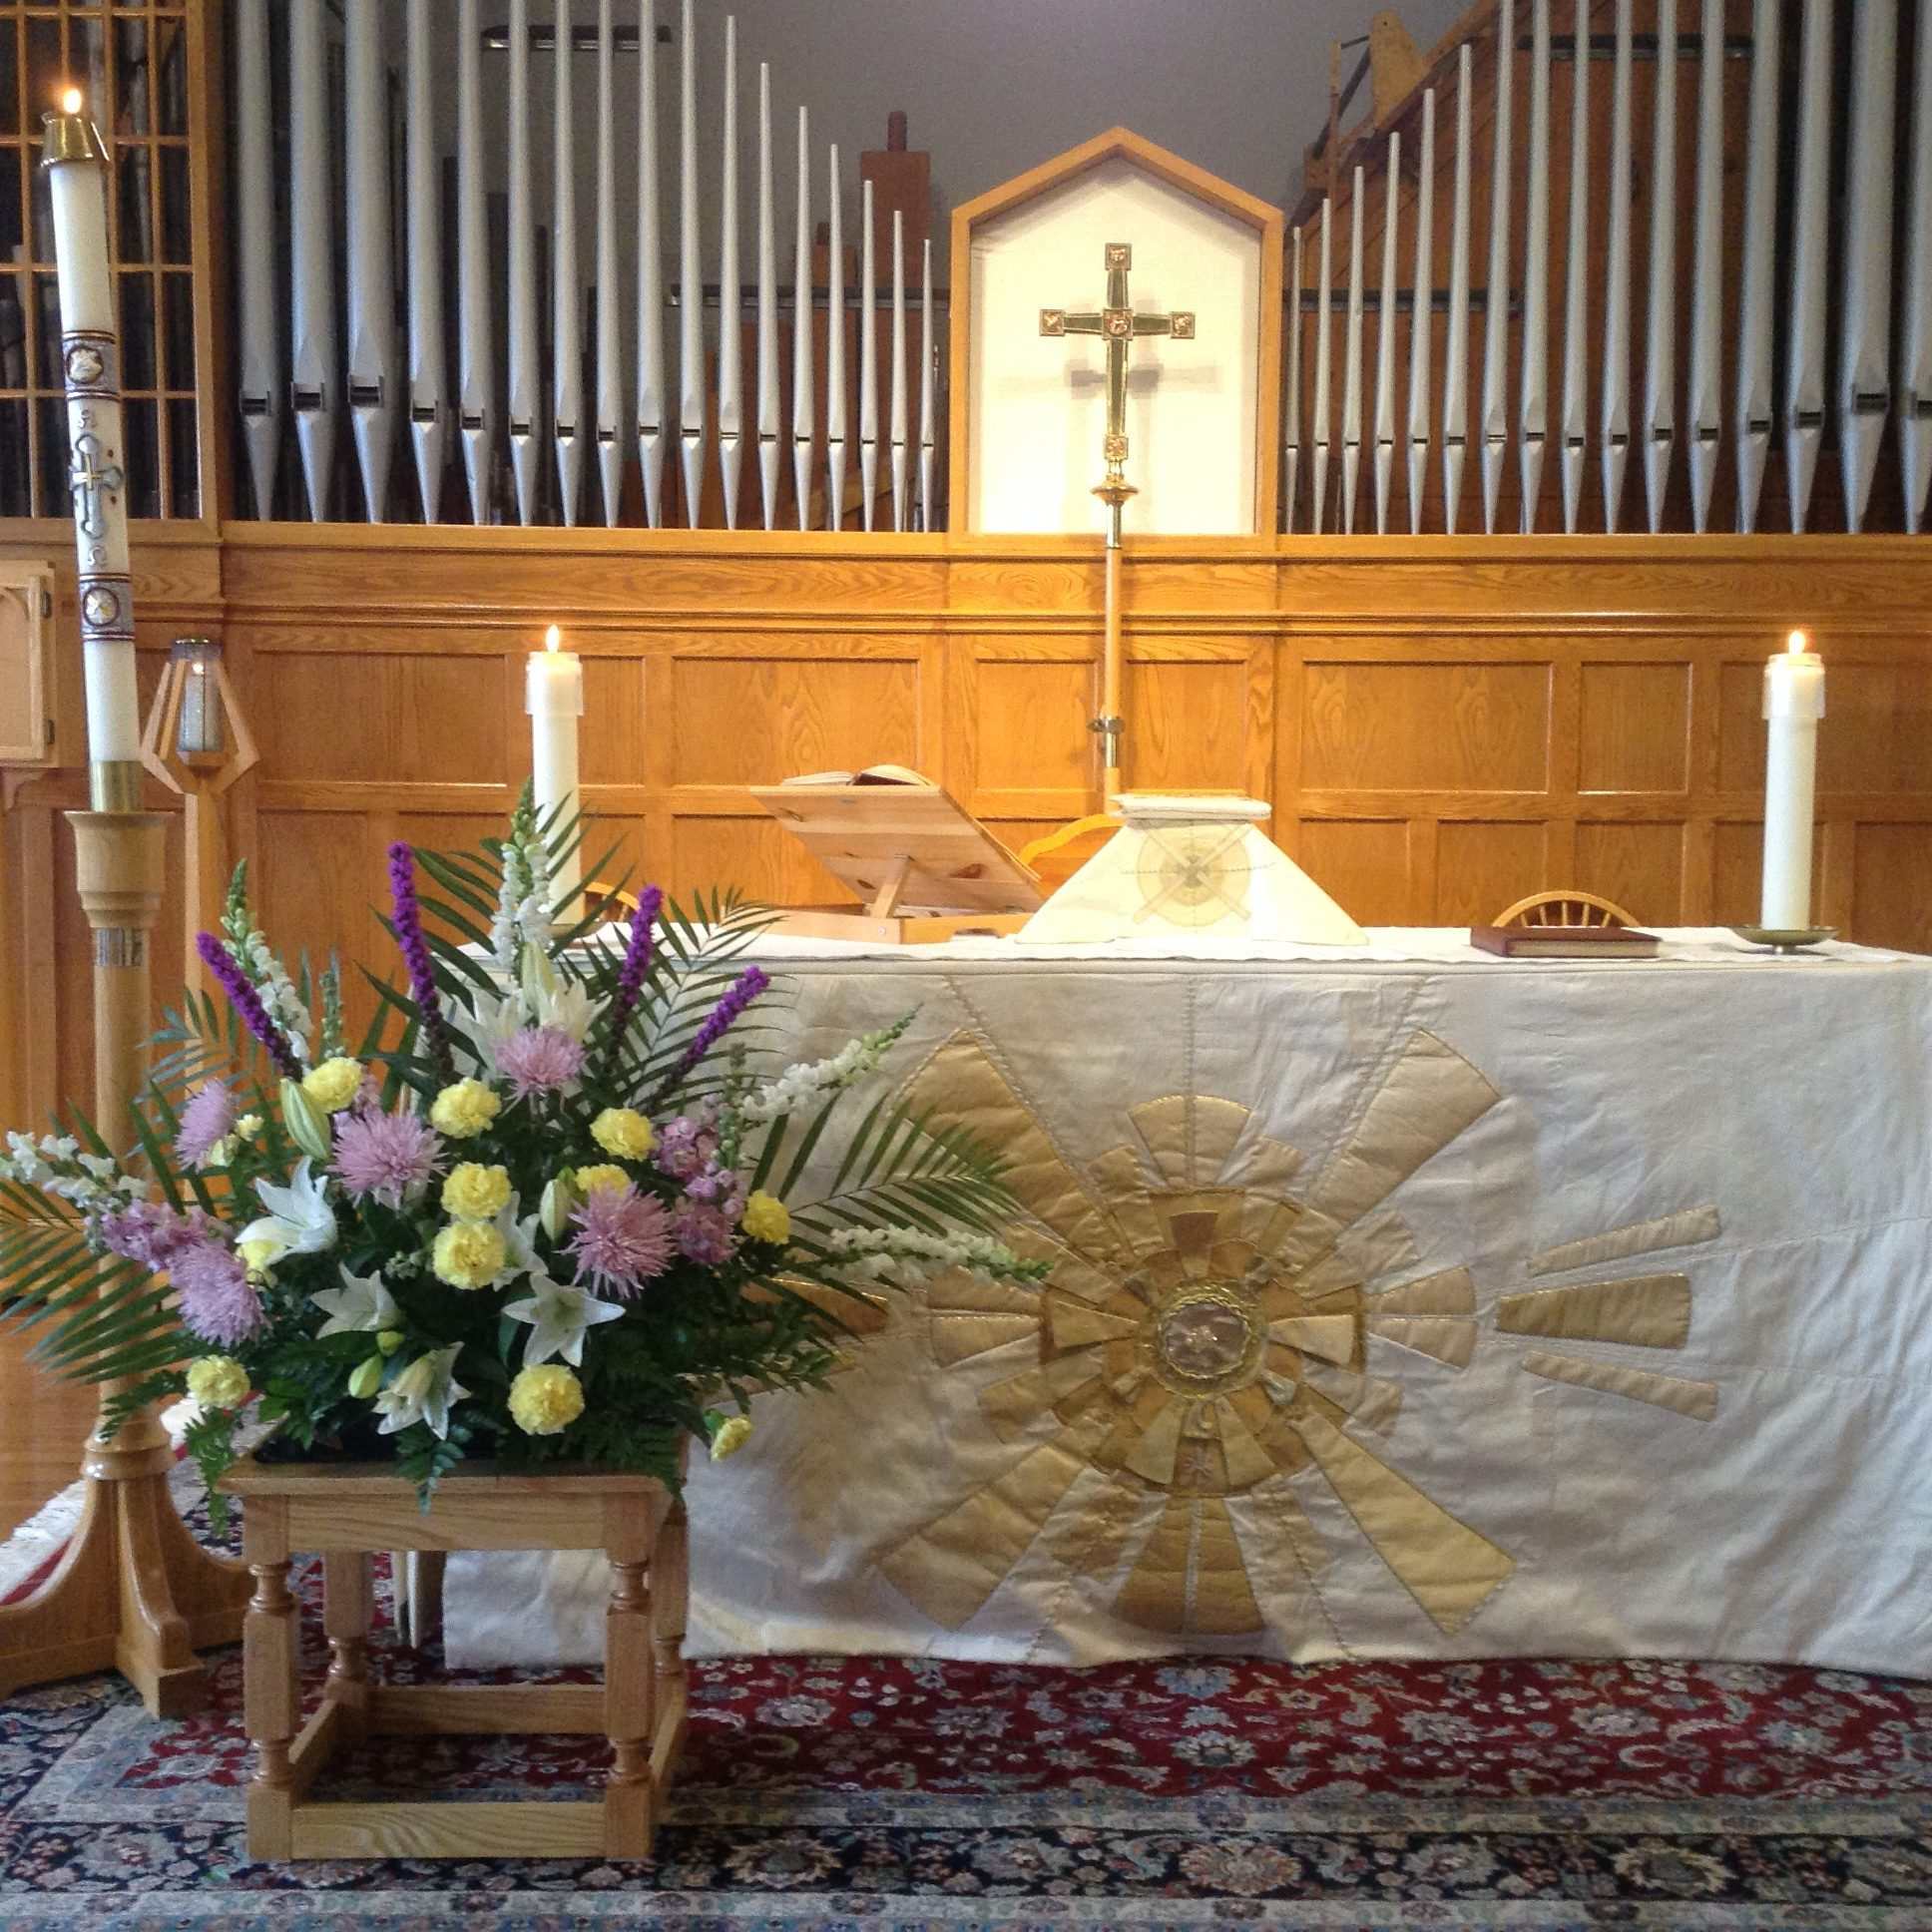 The Fourth Sunday of Easter Service